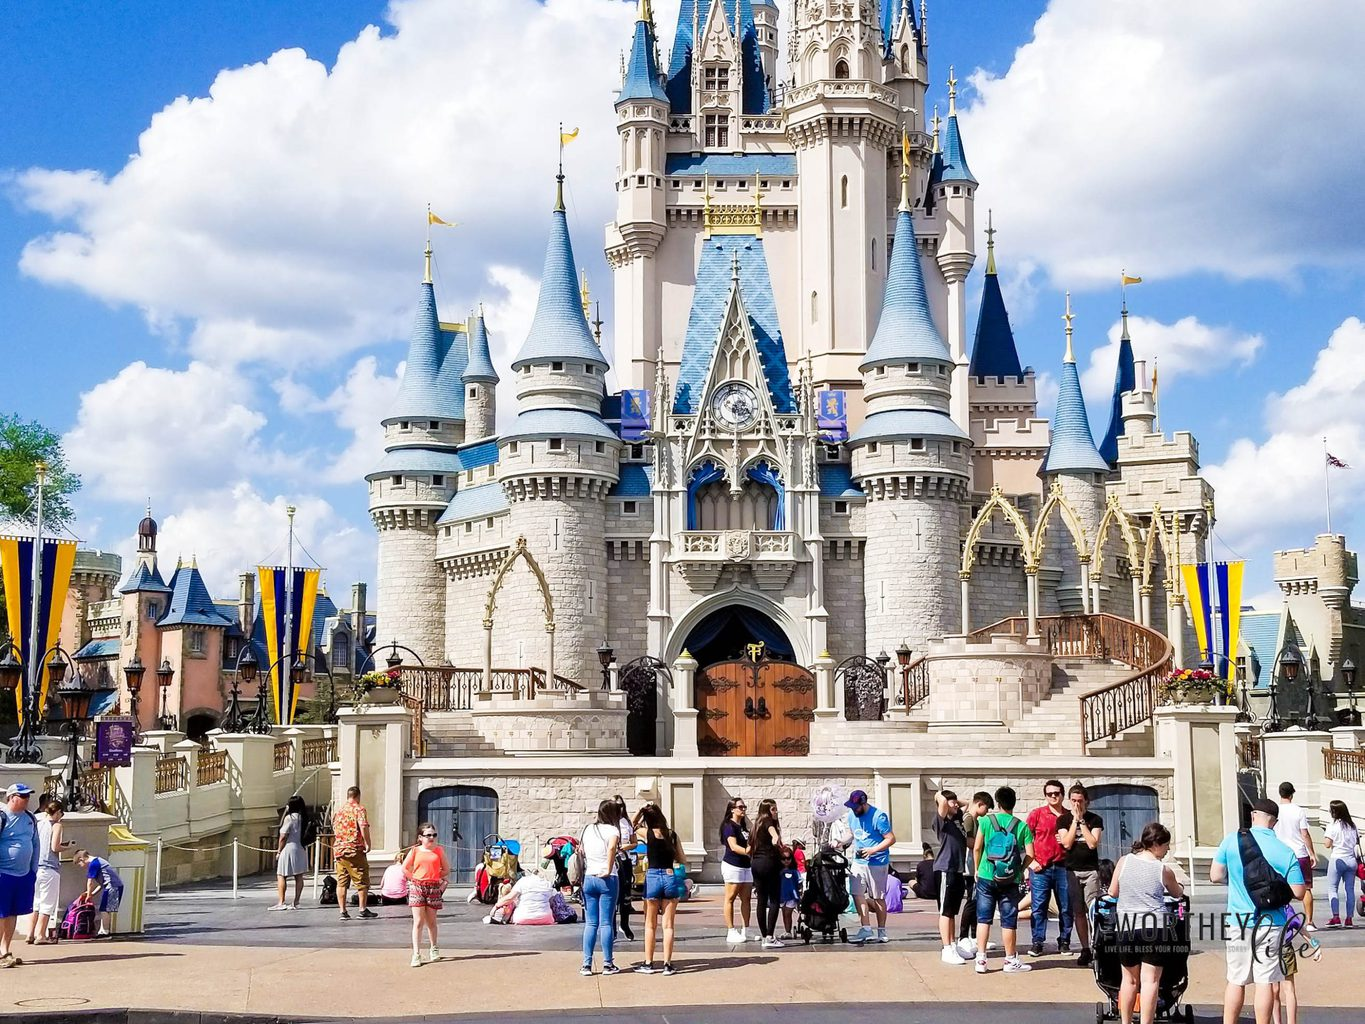 Things to do at Magic Kingdom without a fastpass